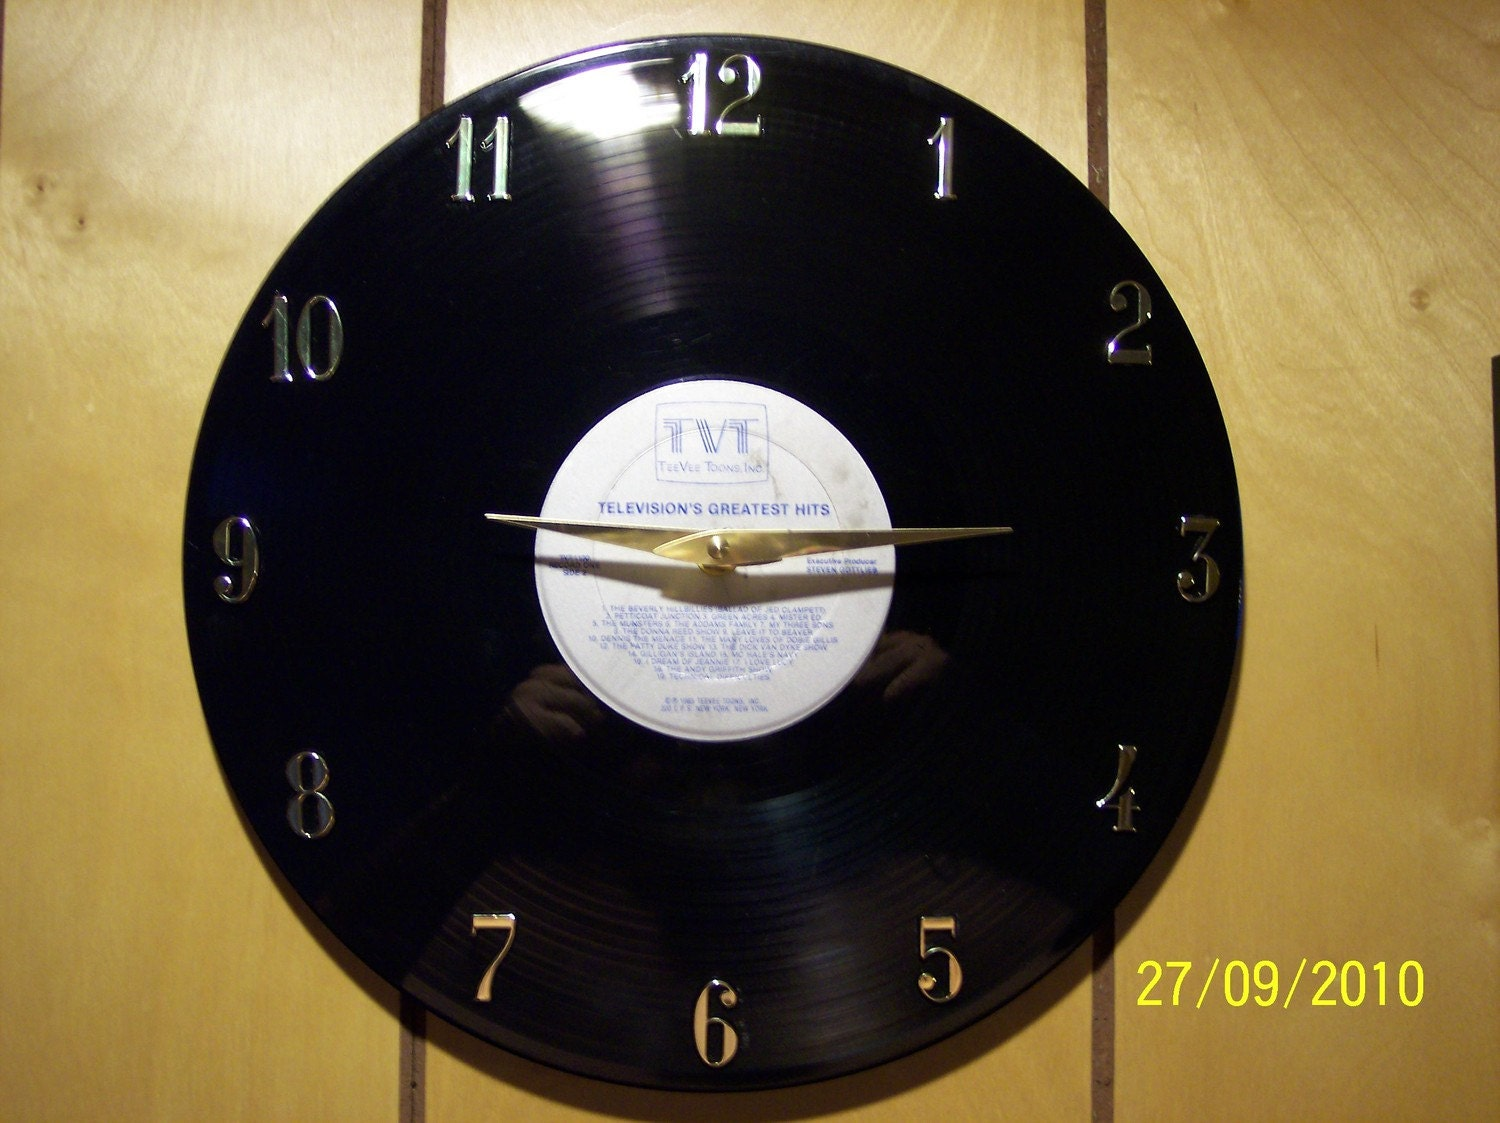 Television's Greatest Hits vinyl record clock